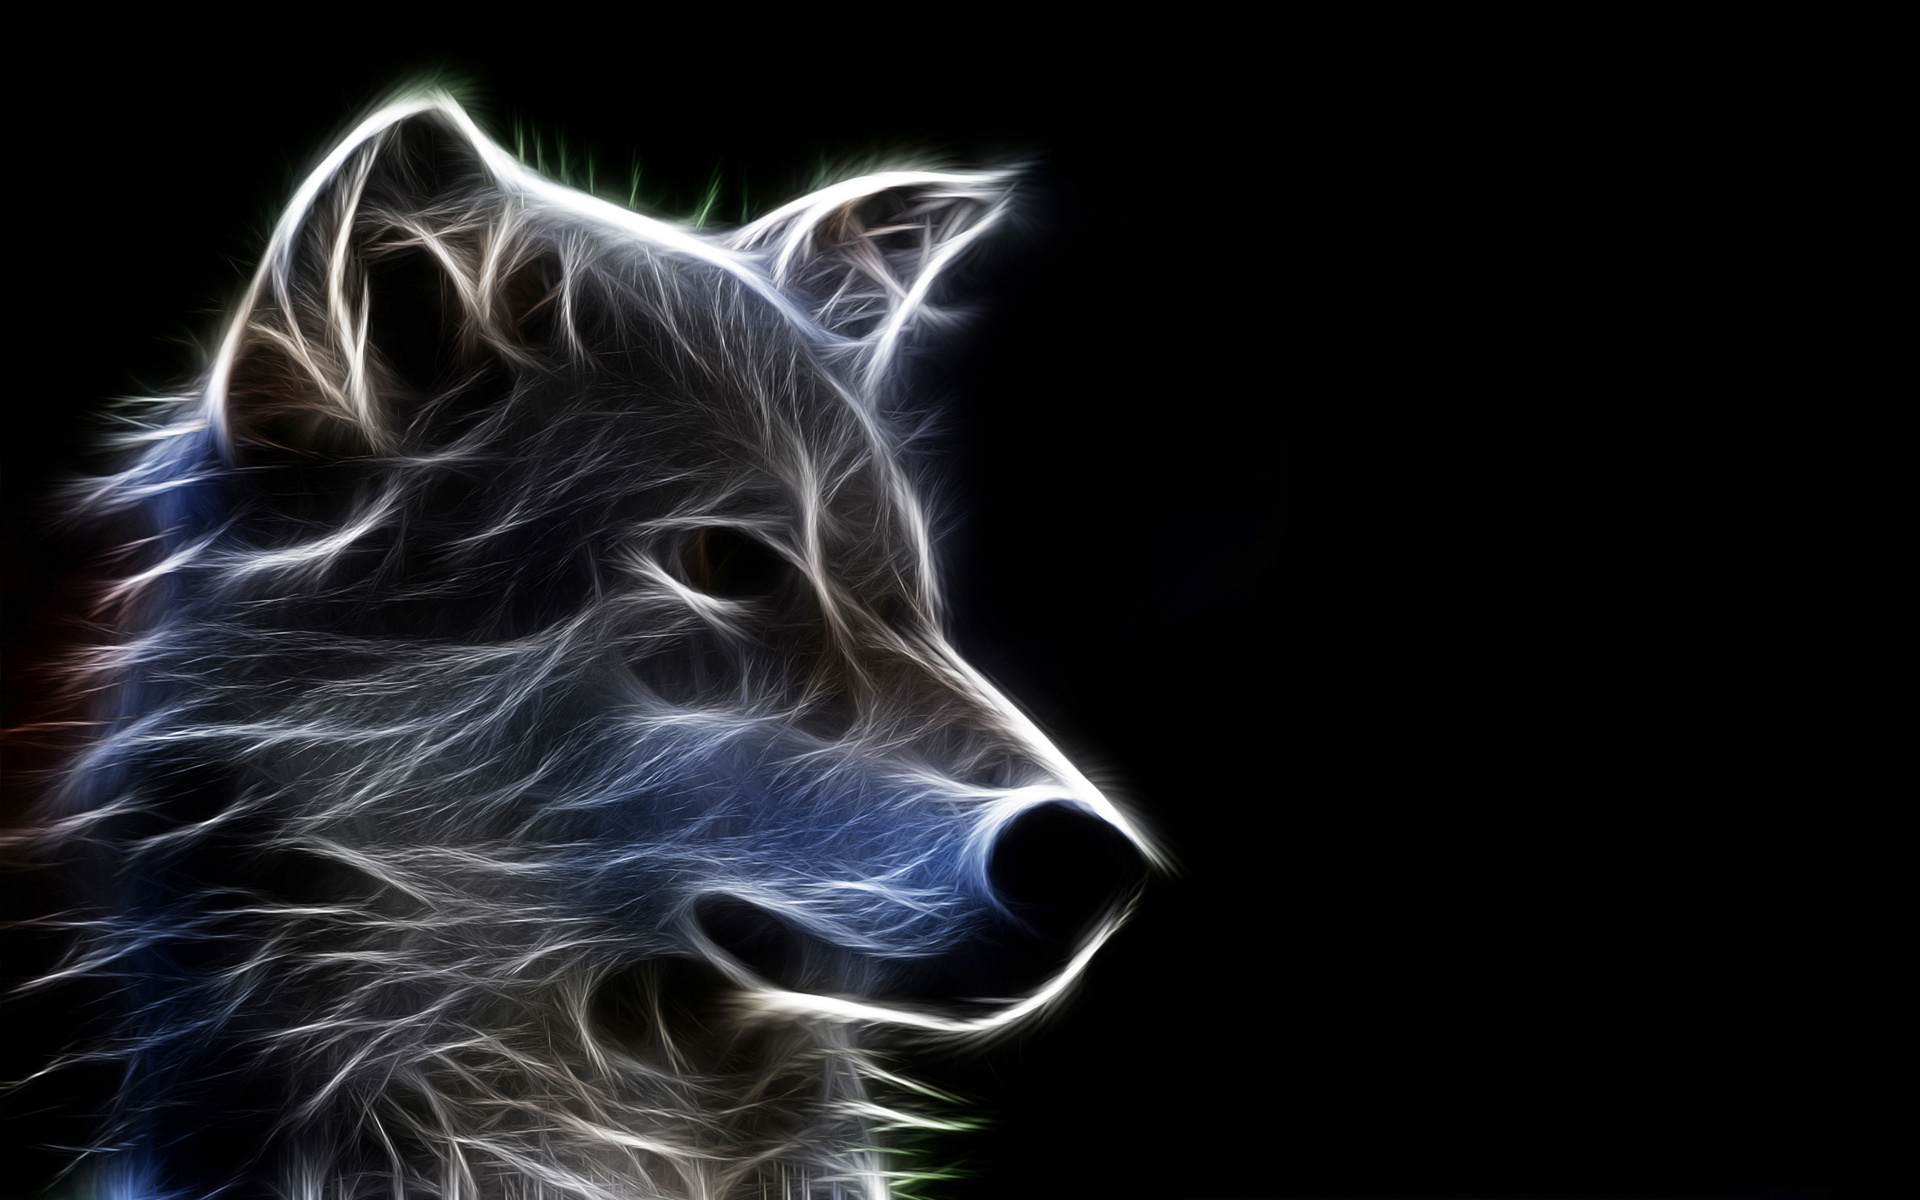 3d 3d animals wallpaper 3d animals wallpapers 3d dog 3d hd wallpapers 1920x1200